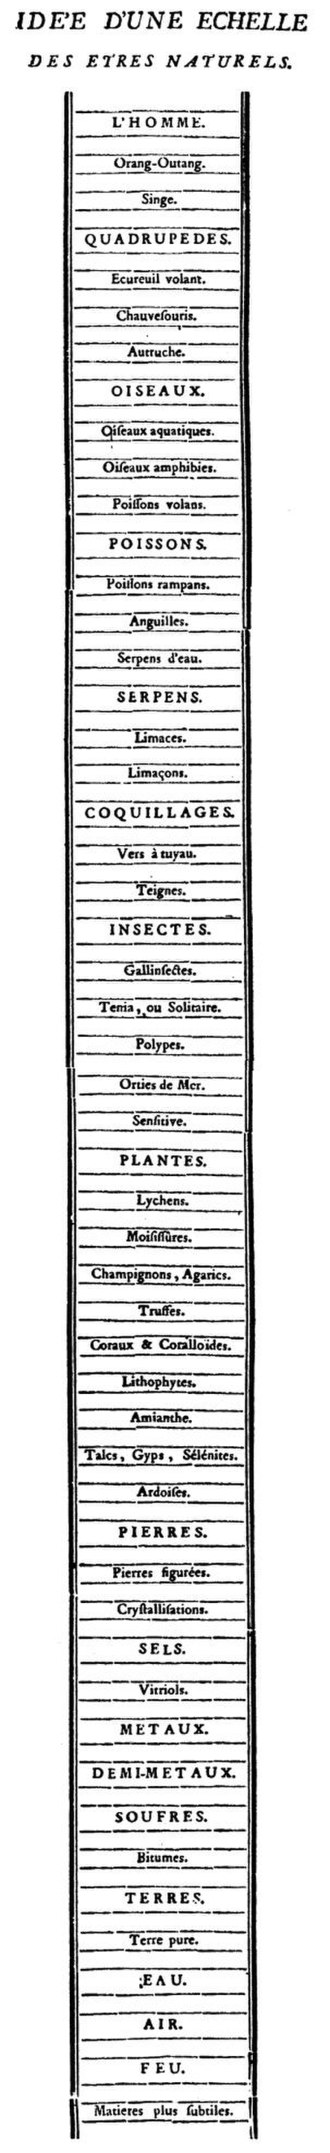 Great chain of being - Charles Bonnet's chain of being from Traité d'insectologie, 1745